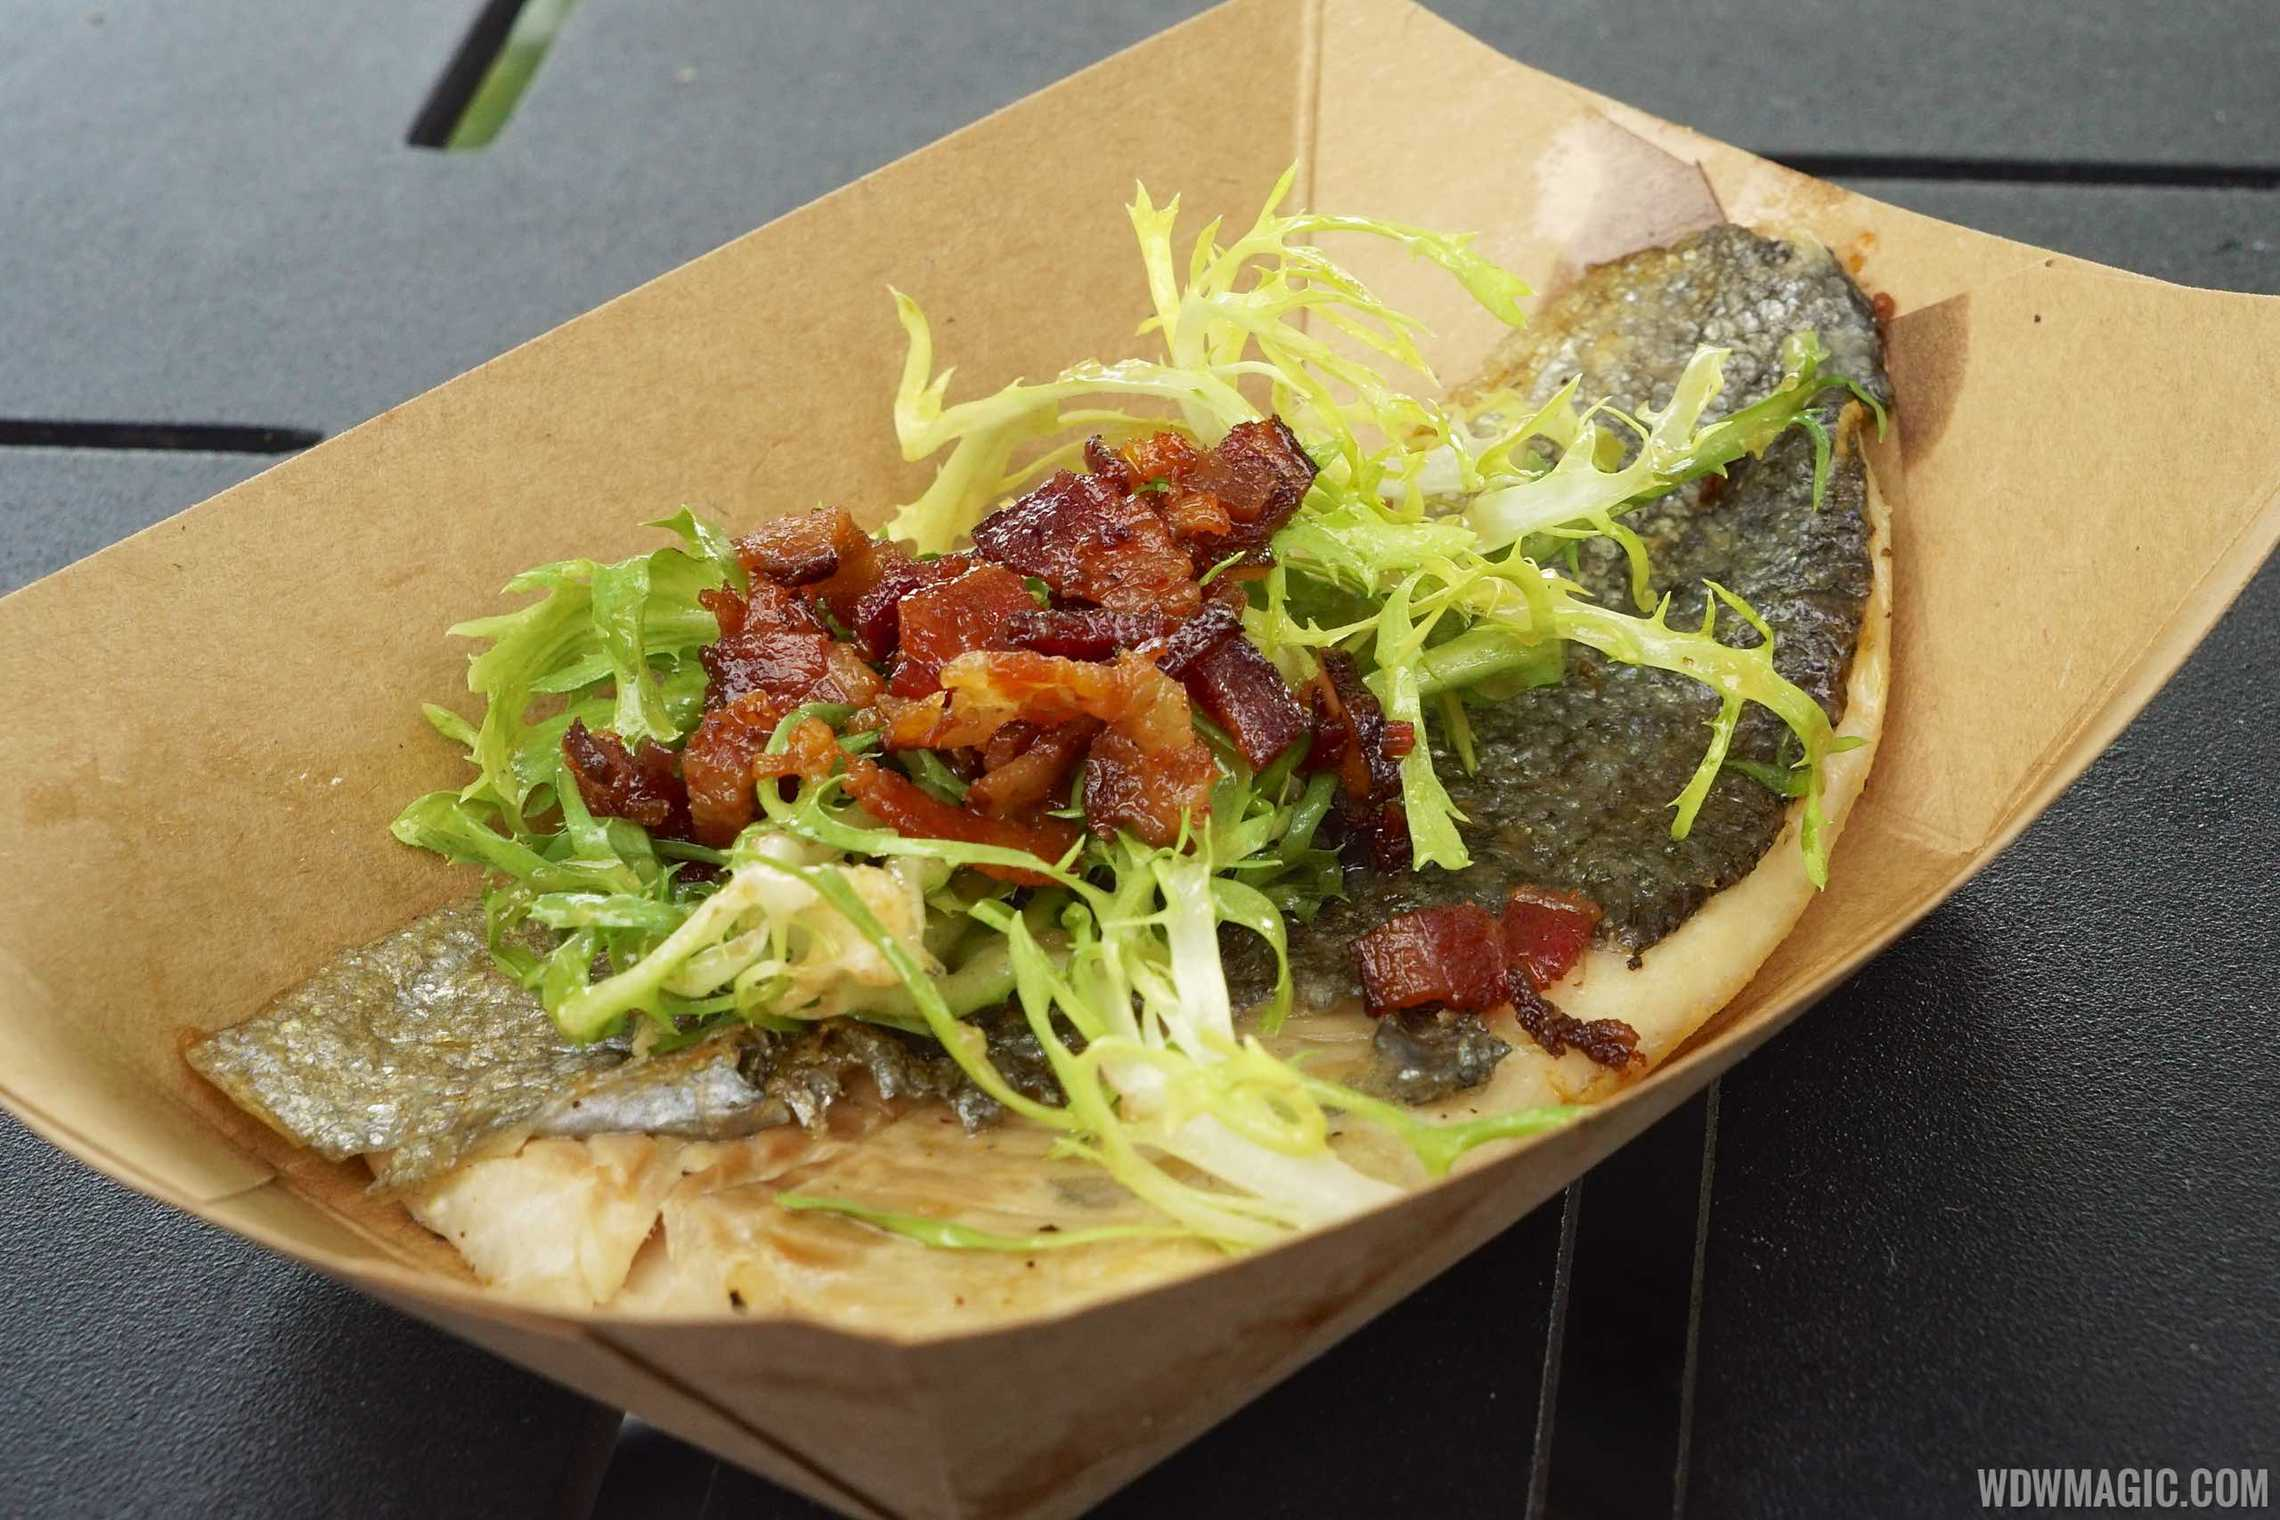 Seared rainbow trout at the Canada Pavilion kiosk